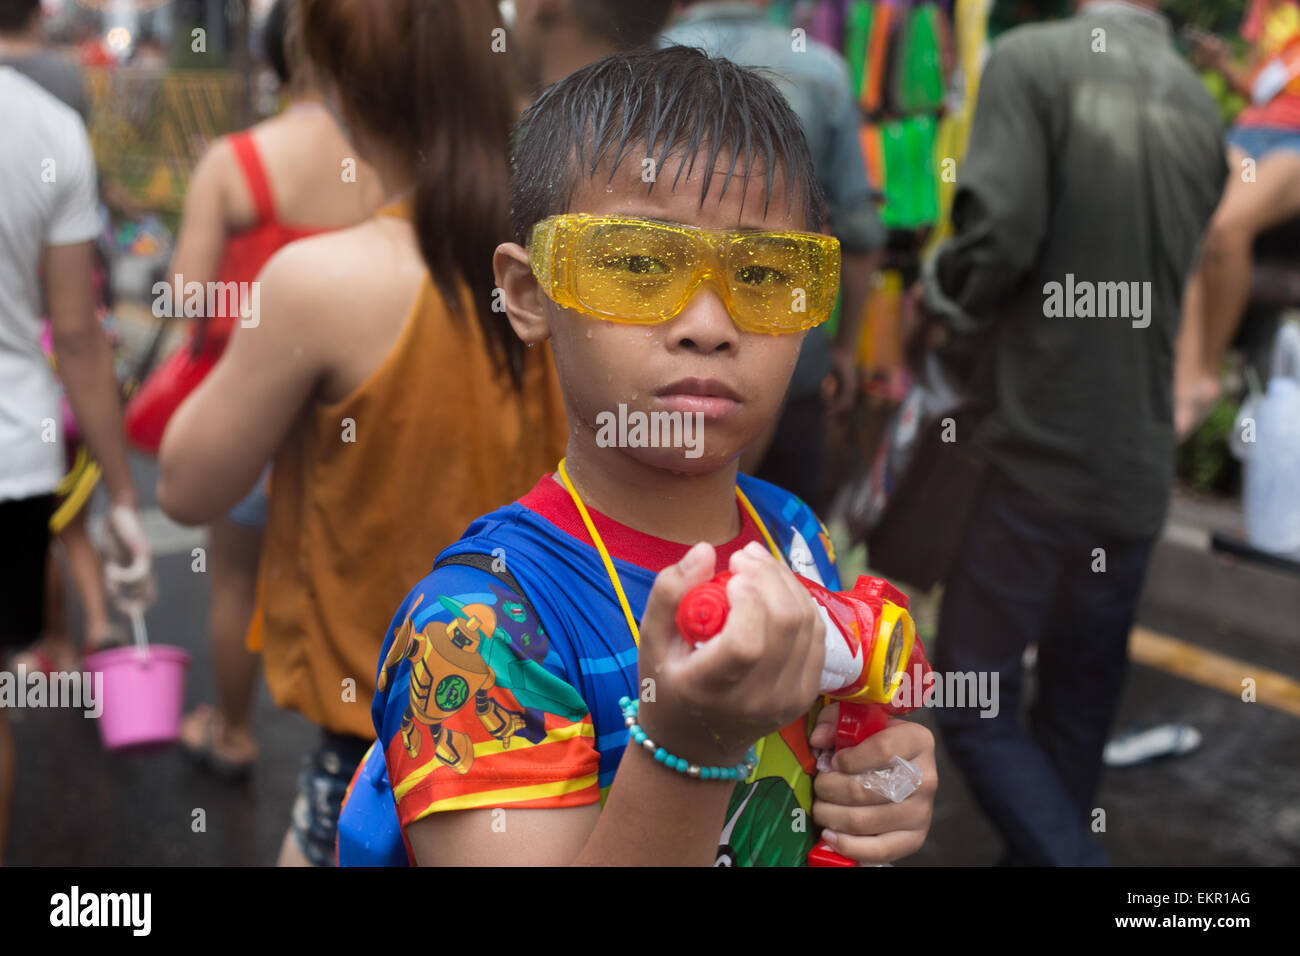 Bangkok, Thailand. 13th April, 2015. A young boys holds his water pistol in the annual Songkran festival on Silom - Stock Image